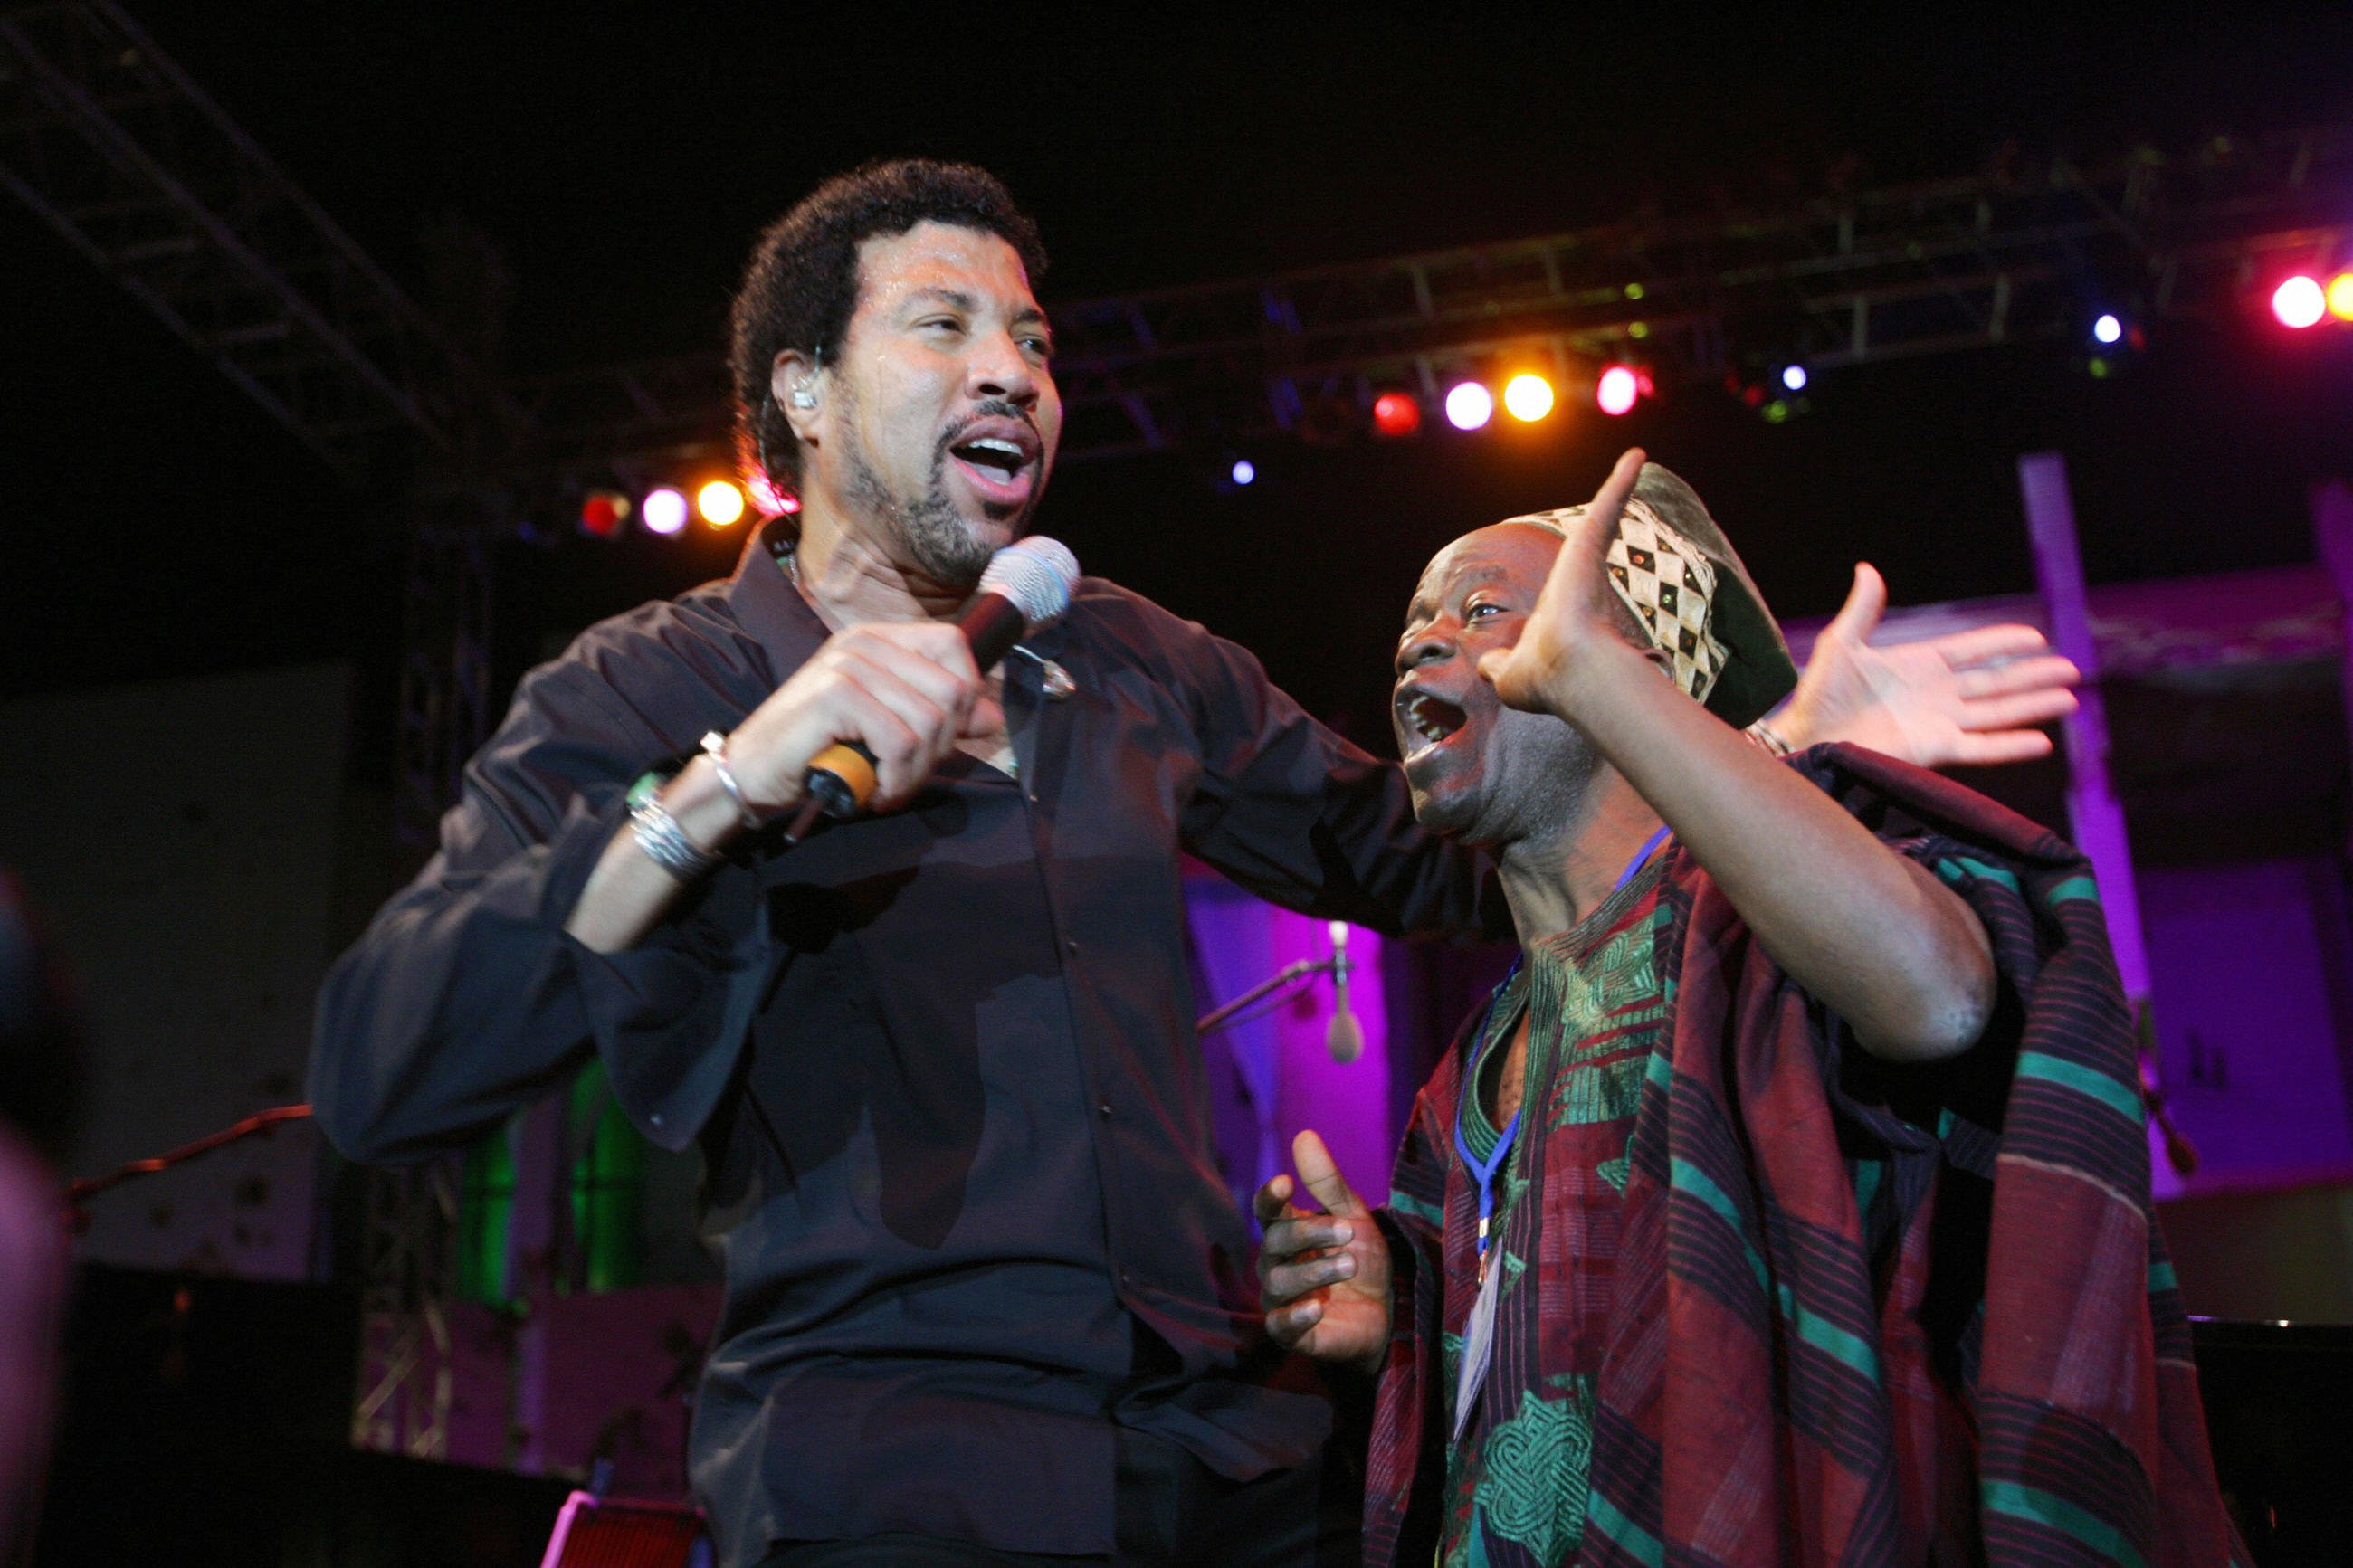 Lionel Richie performs with an unidentified Togolese man during a concert held in front of the house of Libyan leader Moamer Kadhafi in Tripoli on April 14, 2006.